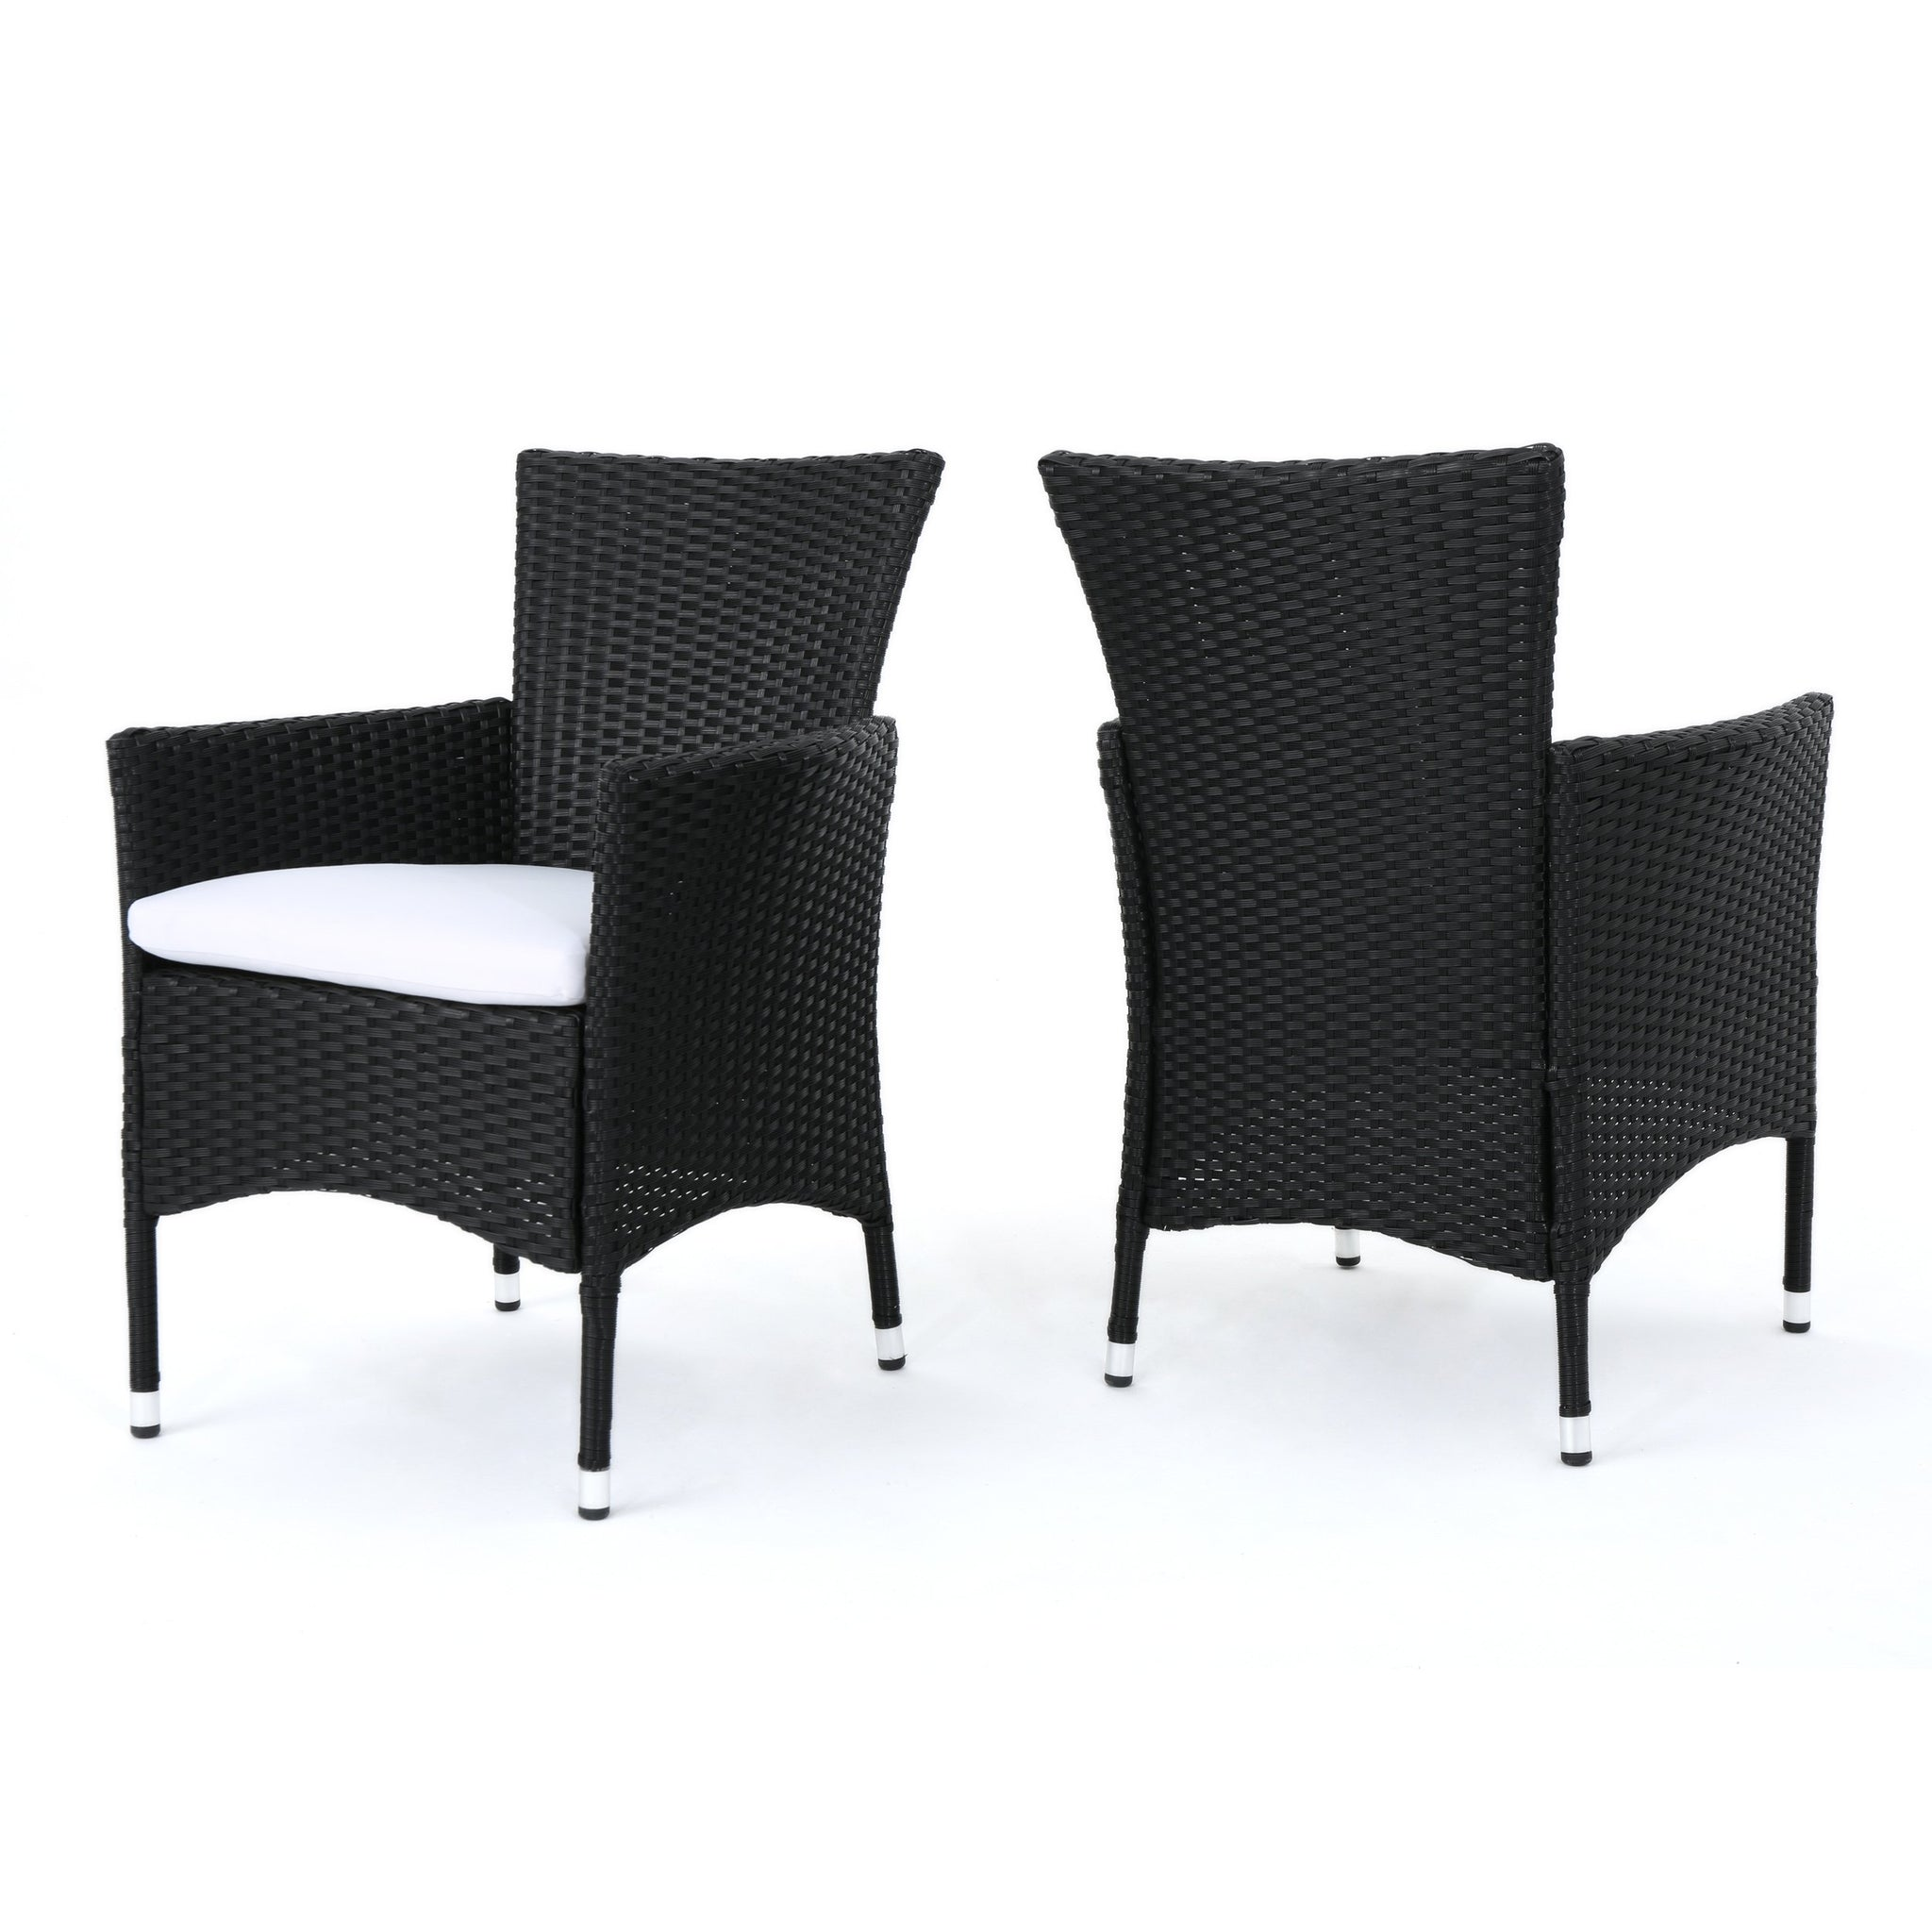 Malick Outdoor Wicker Dining Chairs With Water Resistant Cushions (Set Of 2)